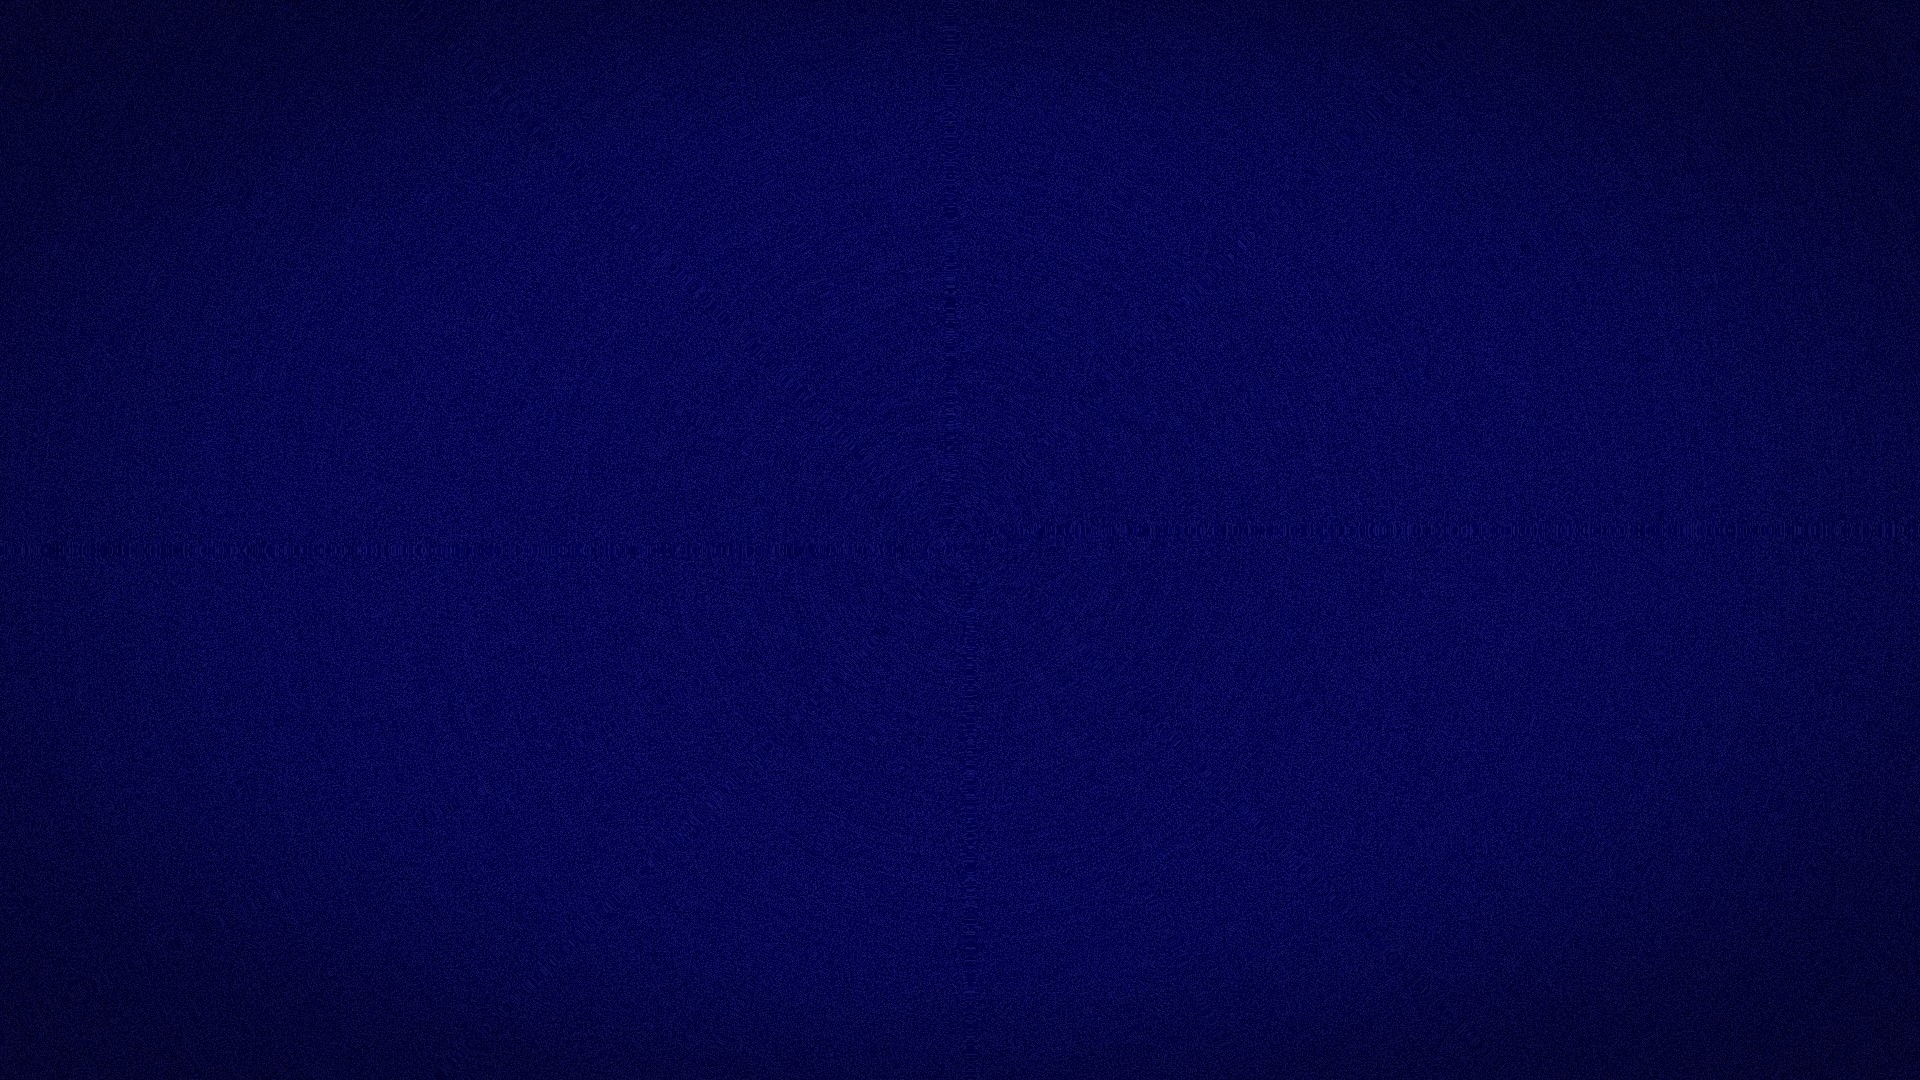 Wallpapers Colors Solid Blue Background 1920x1080